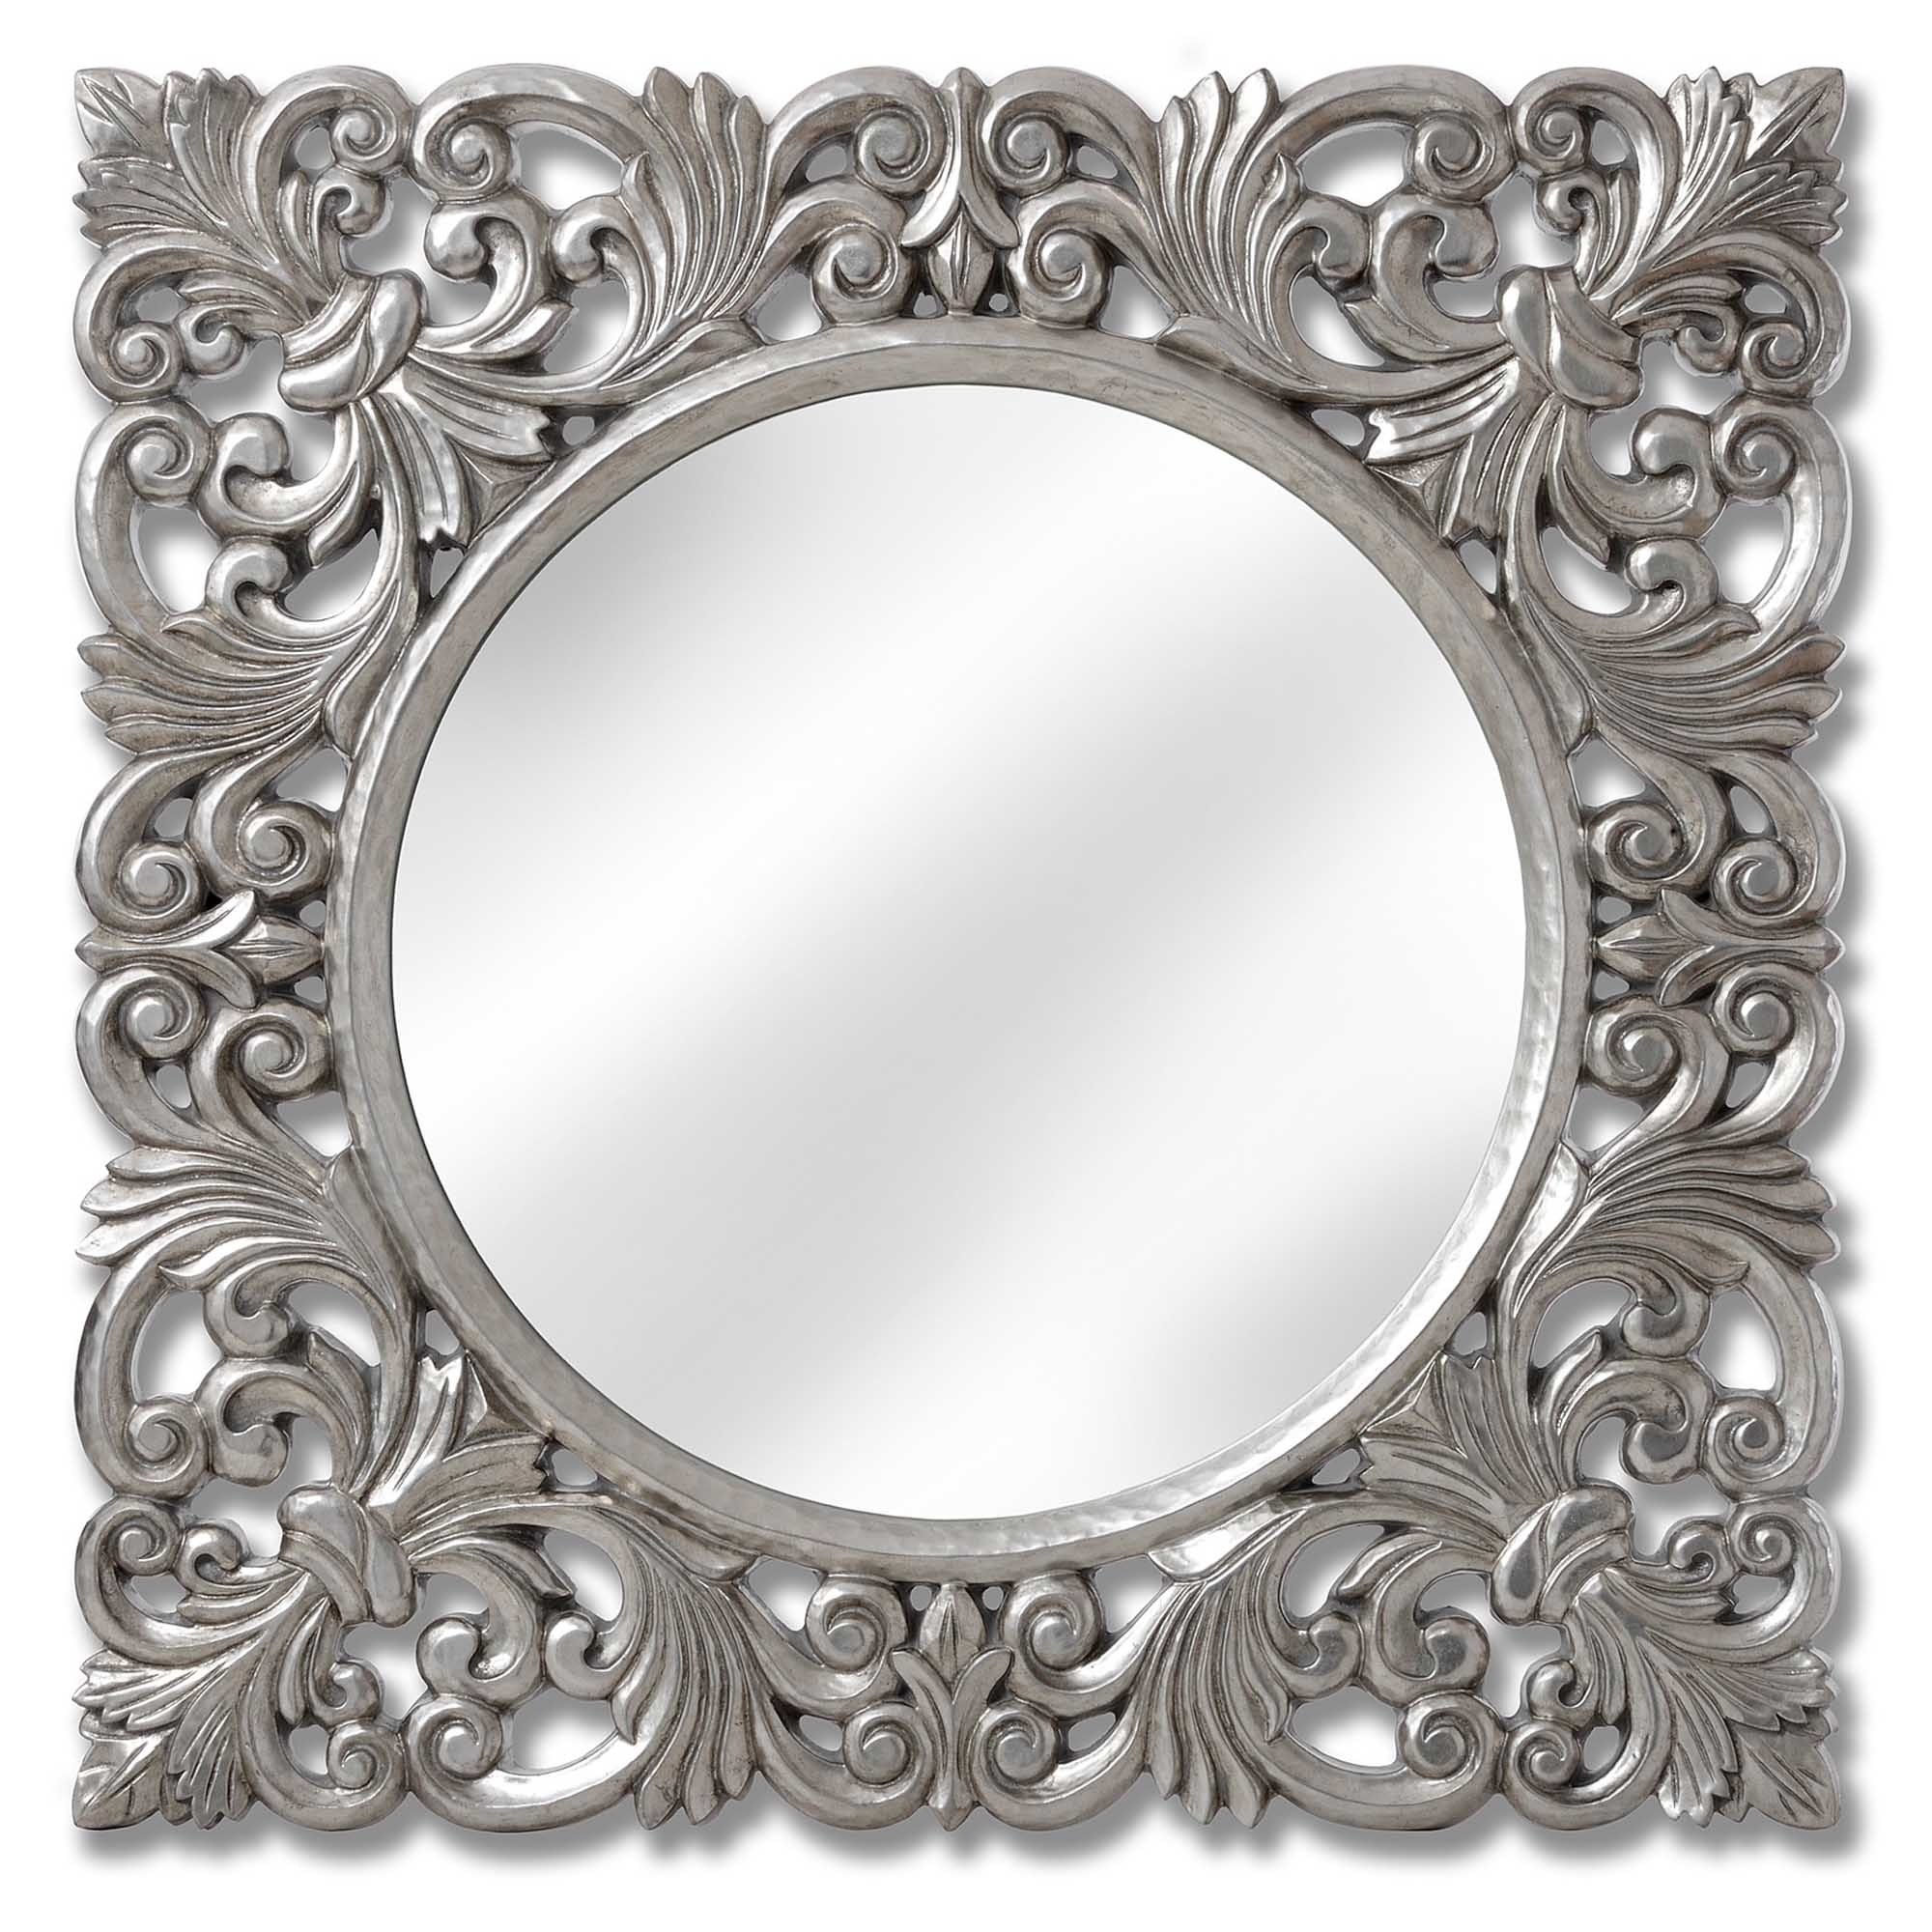 baroque antique french style silver wall mirror